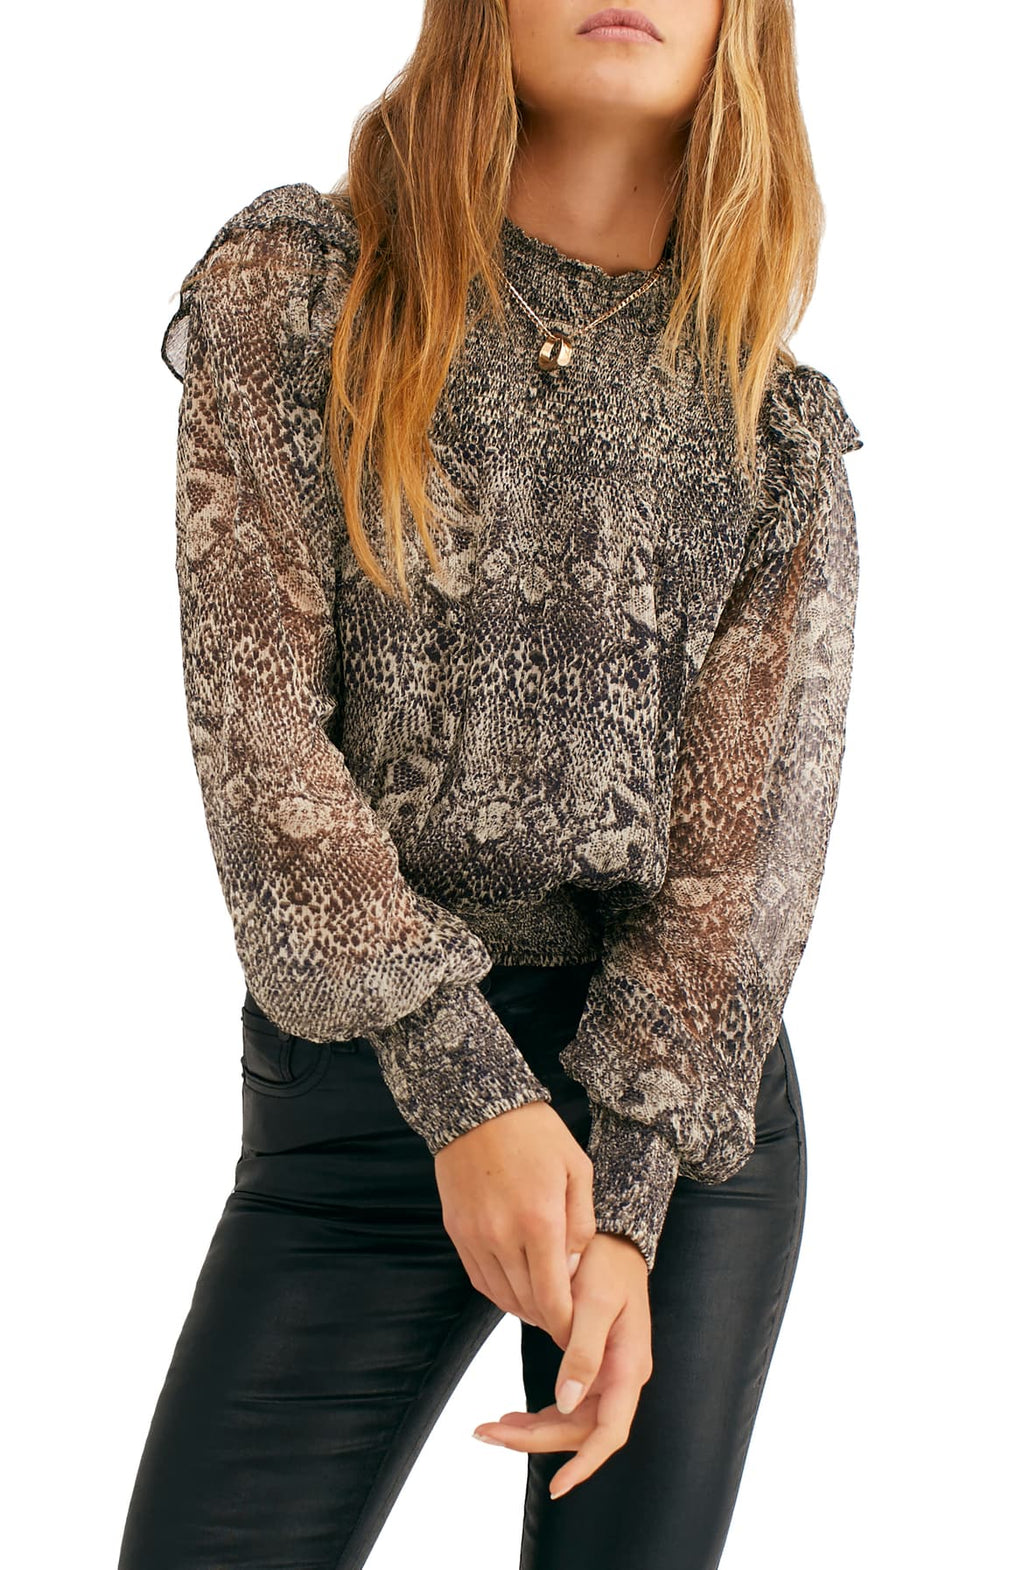 Roma Blouse in snake print